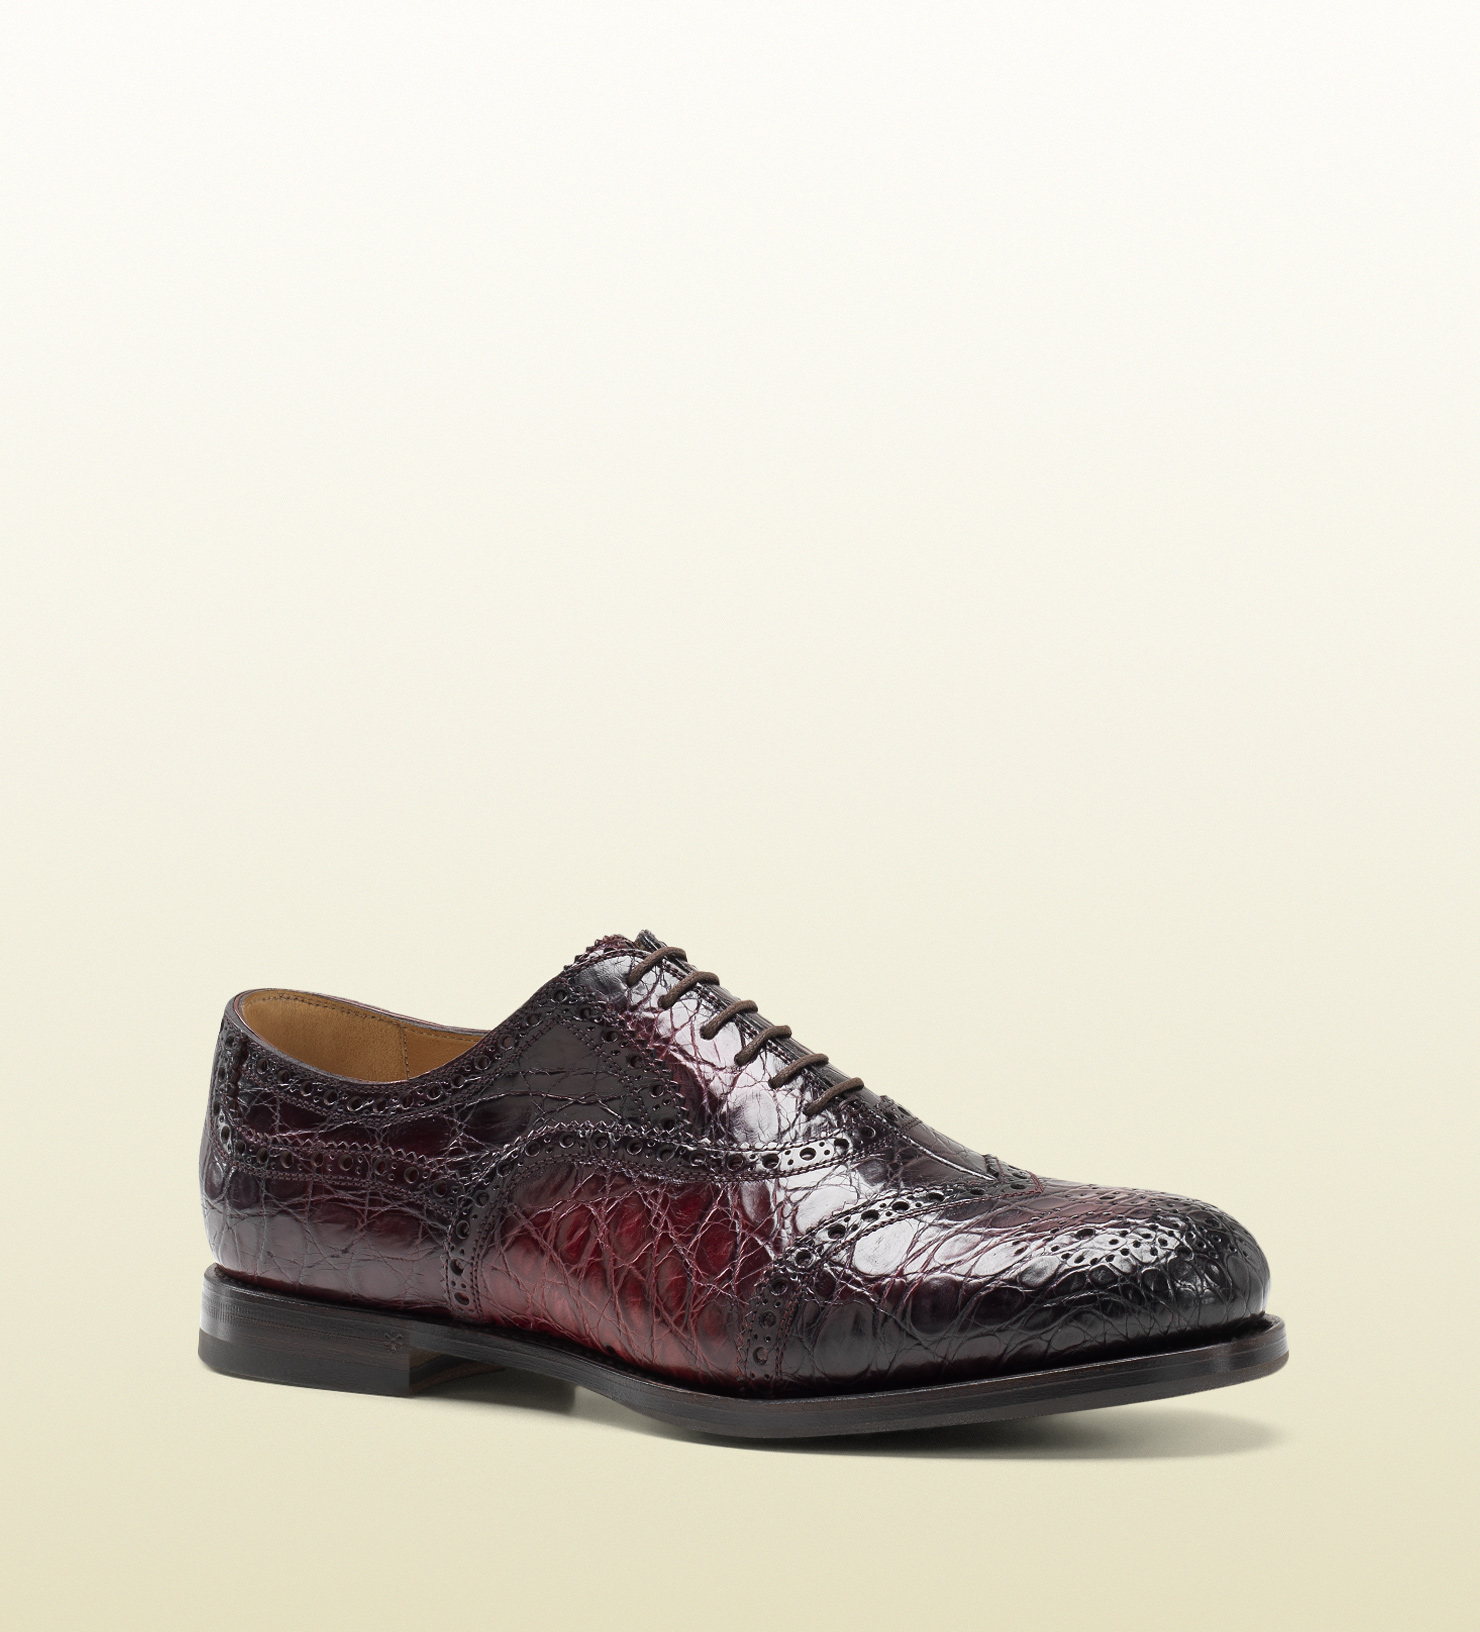 Lyst Gucci Bordeaux Brogue Crocodile Lace Up Shoe In